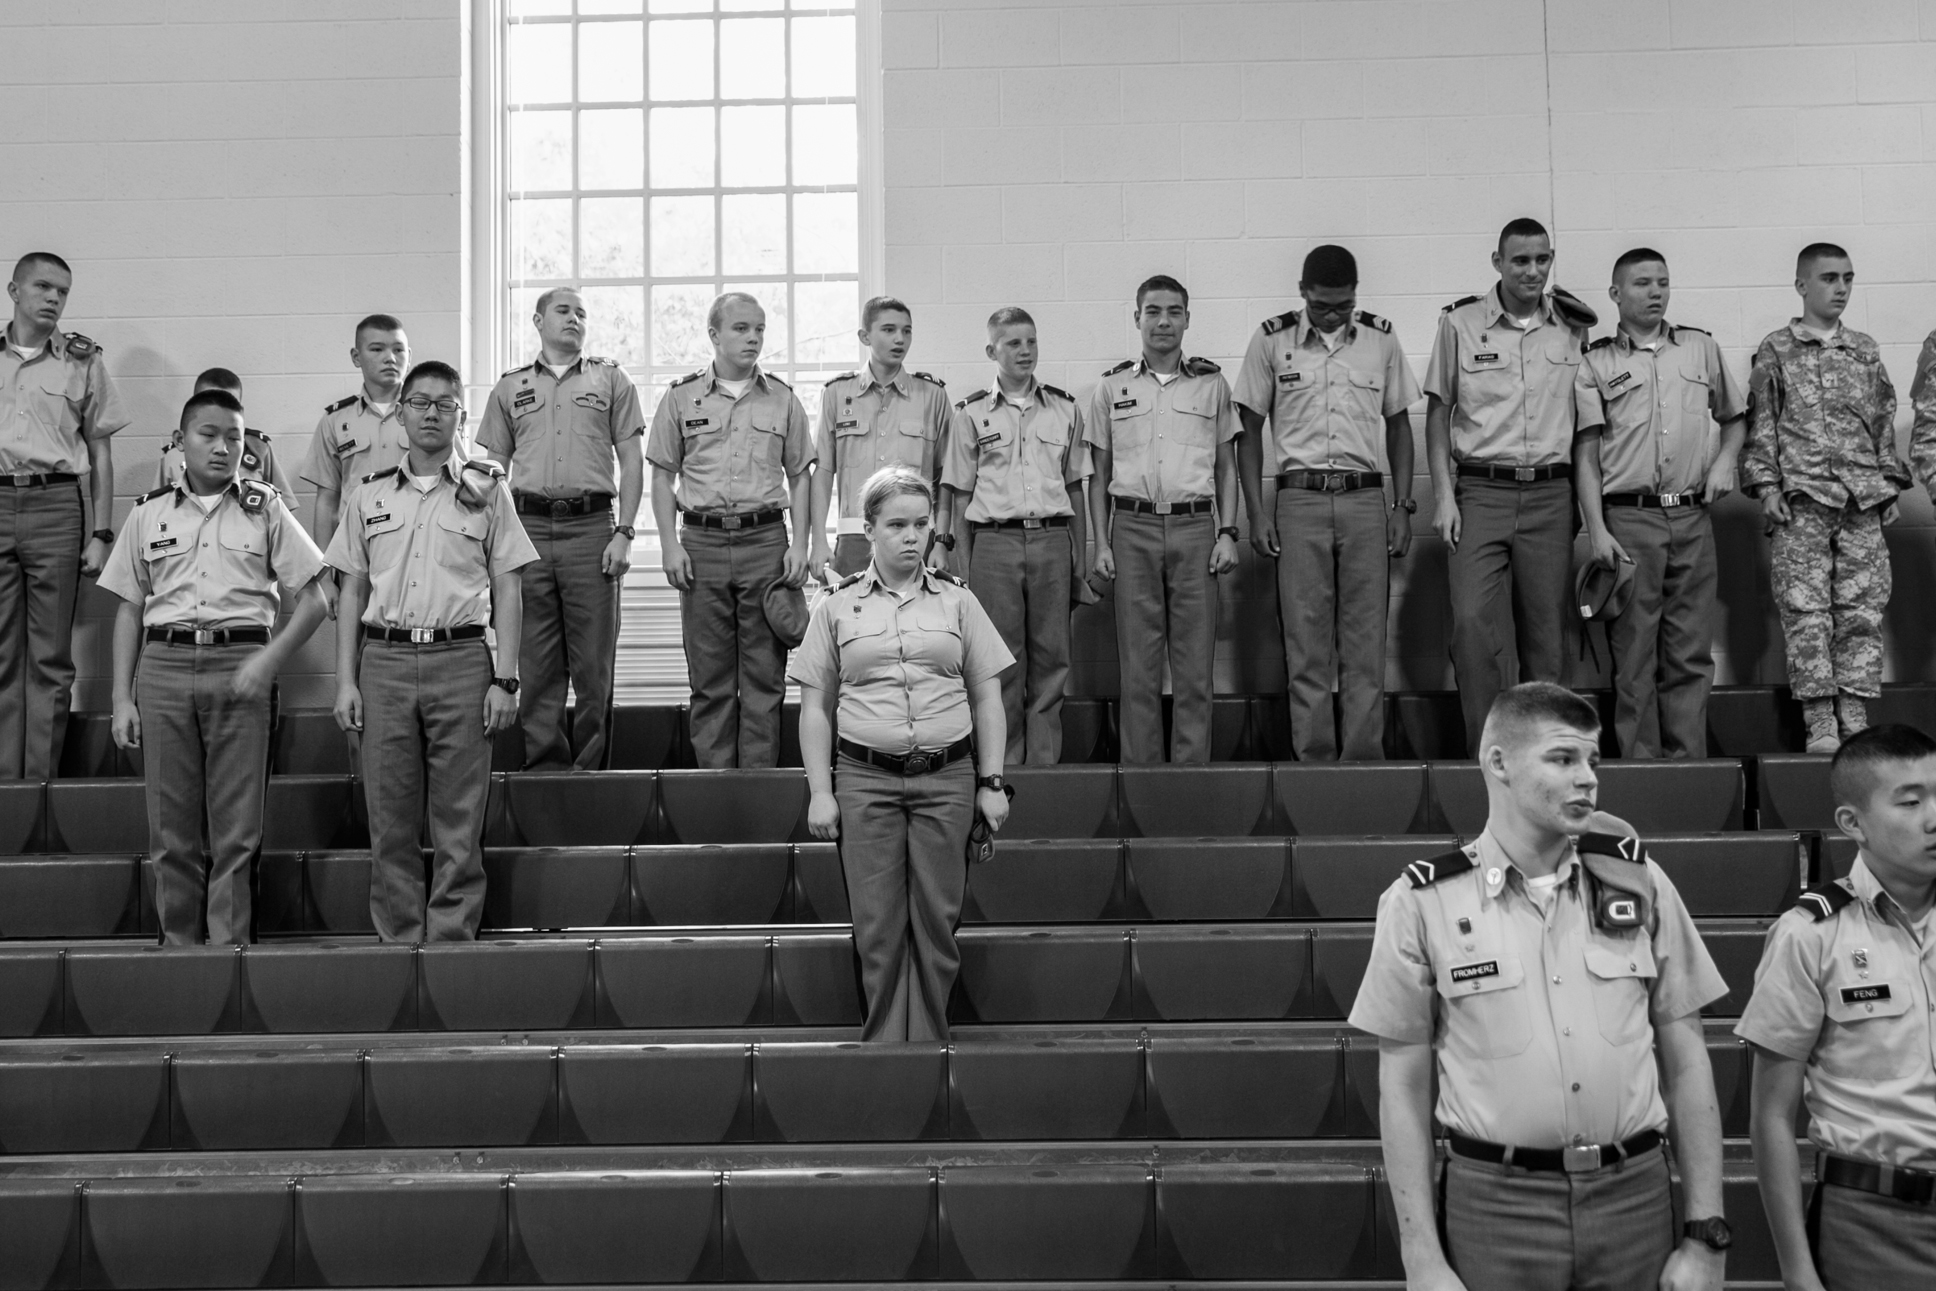 Corporal Emily Hill, a junior, stands among the male cadets during an all-school assembly.